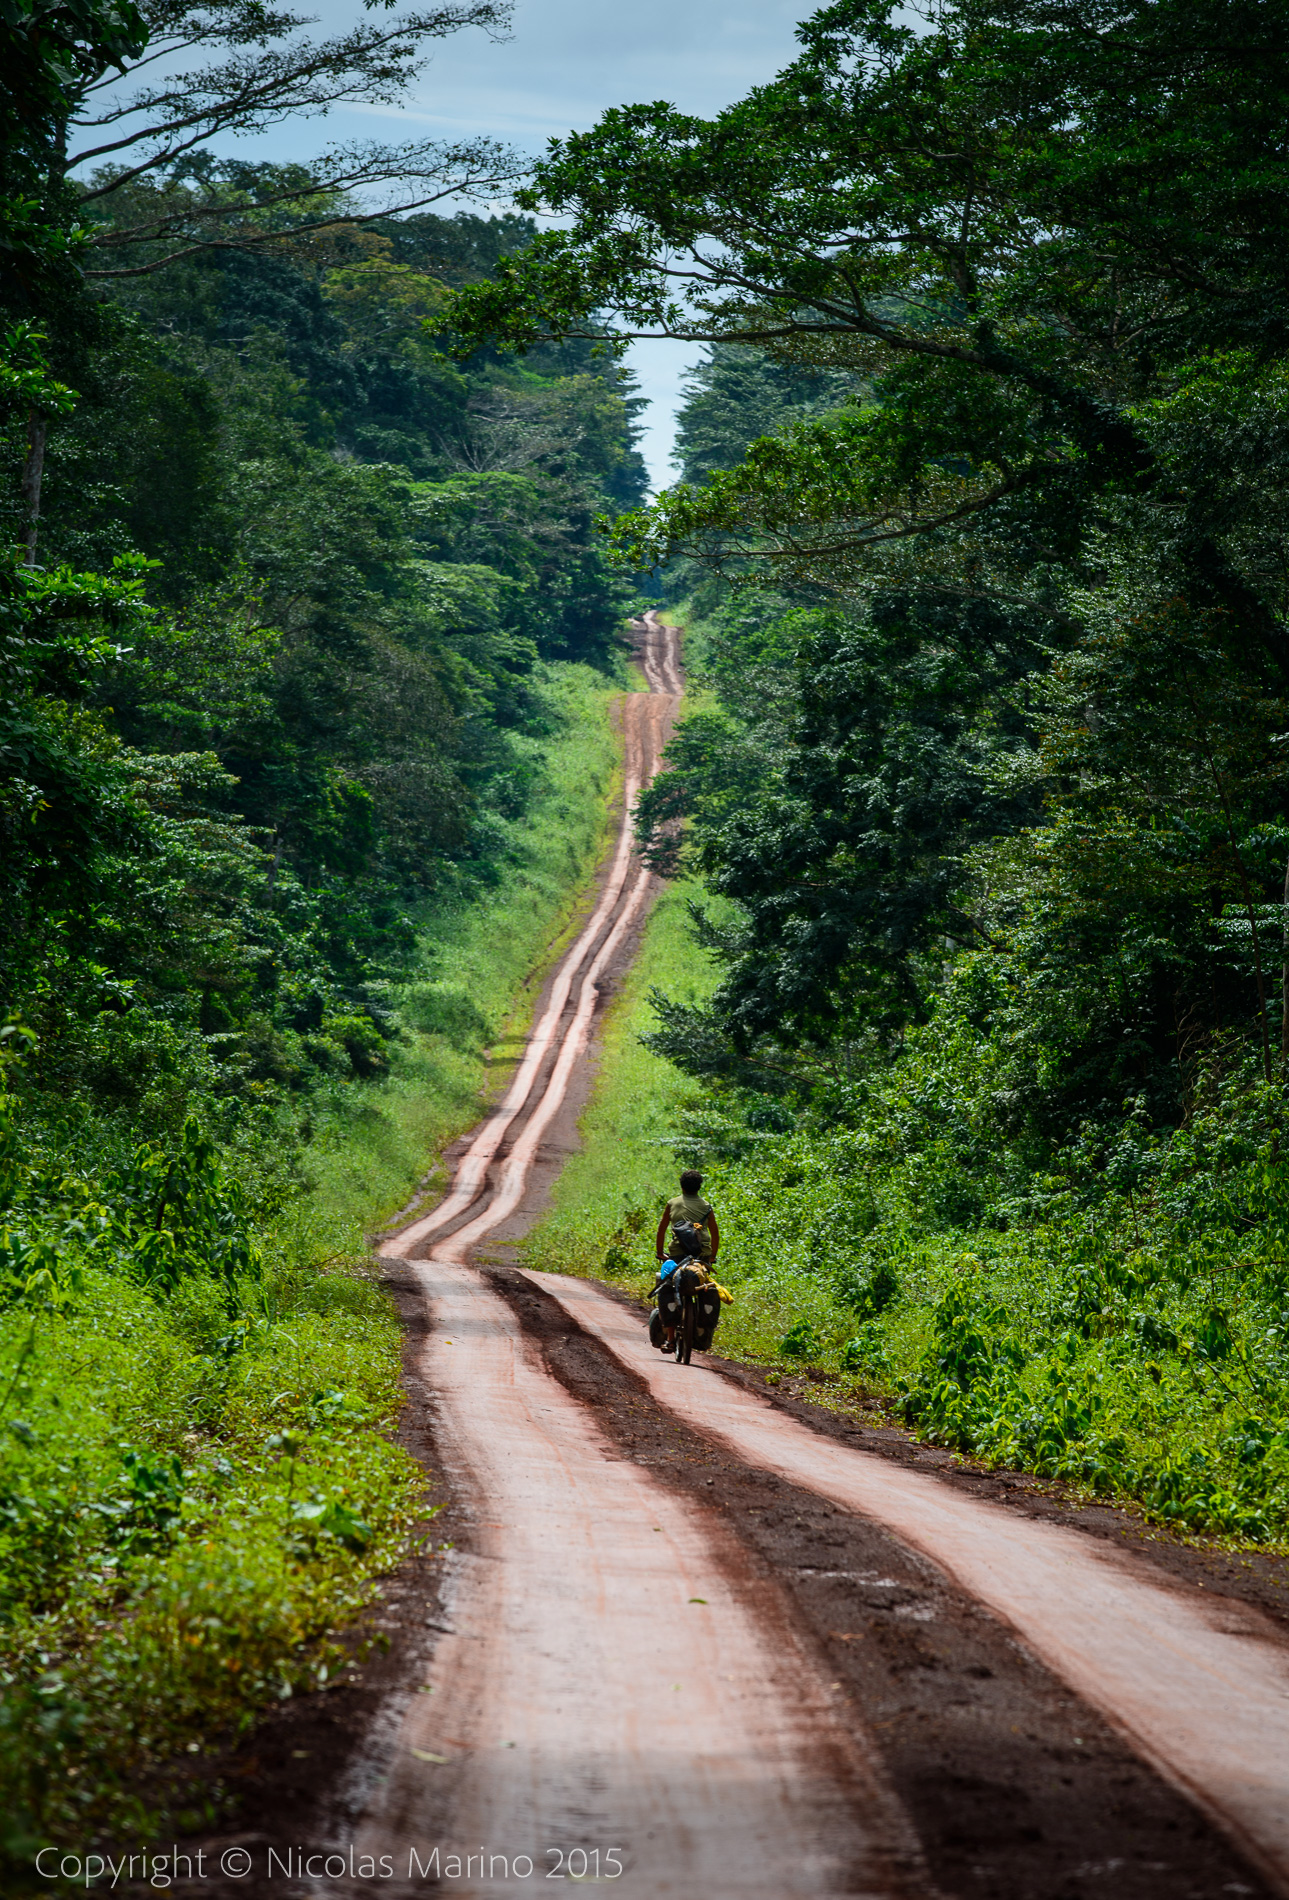 cycling in the equatorial rainforest. Cameroon